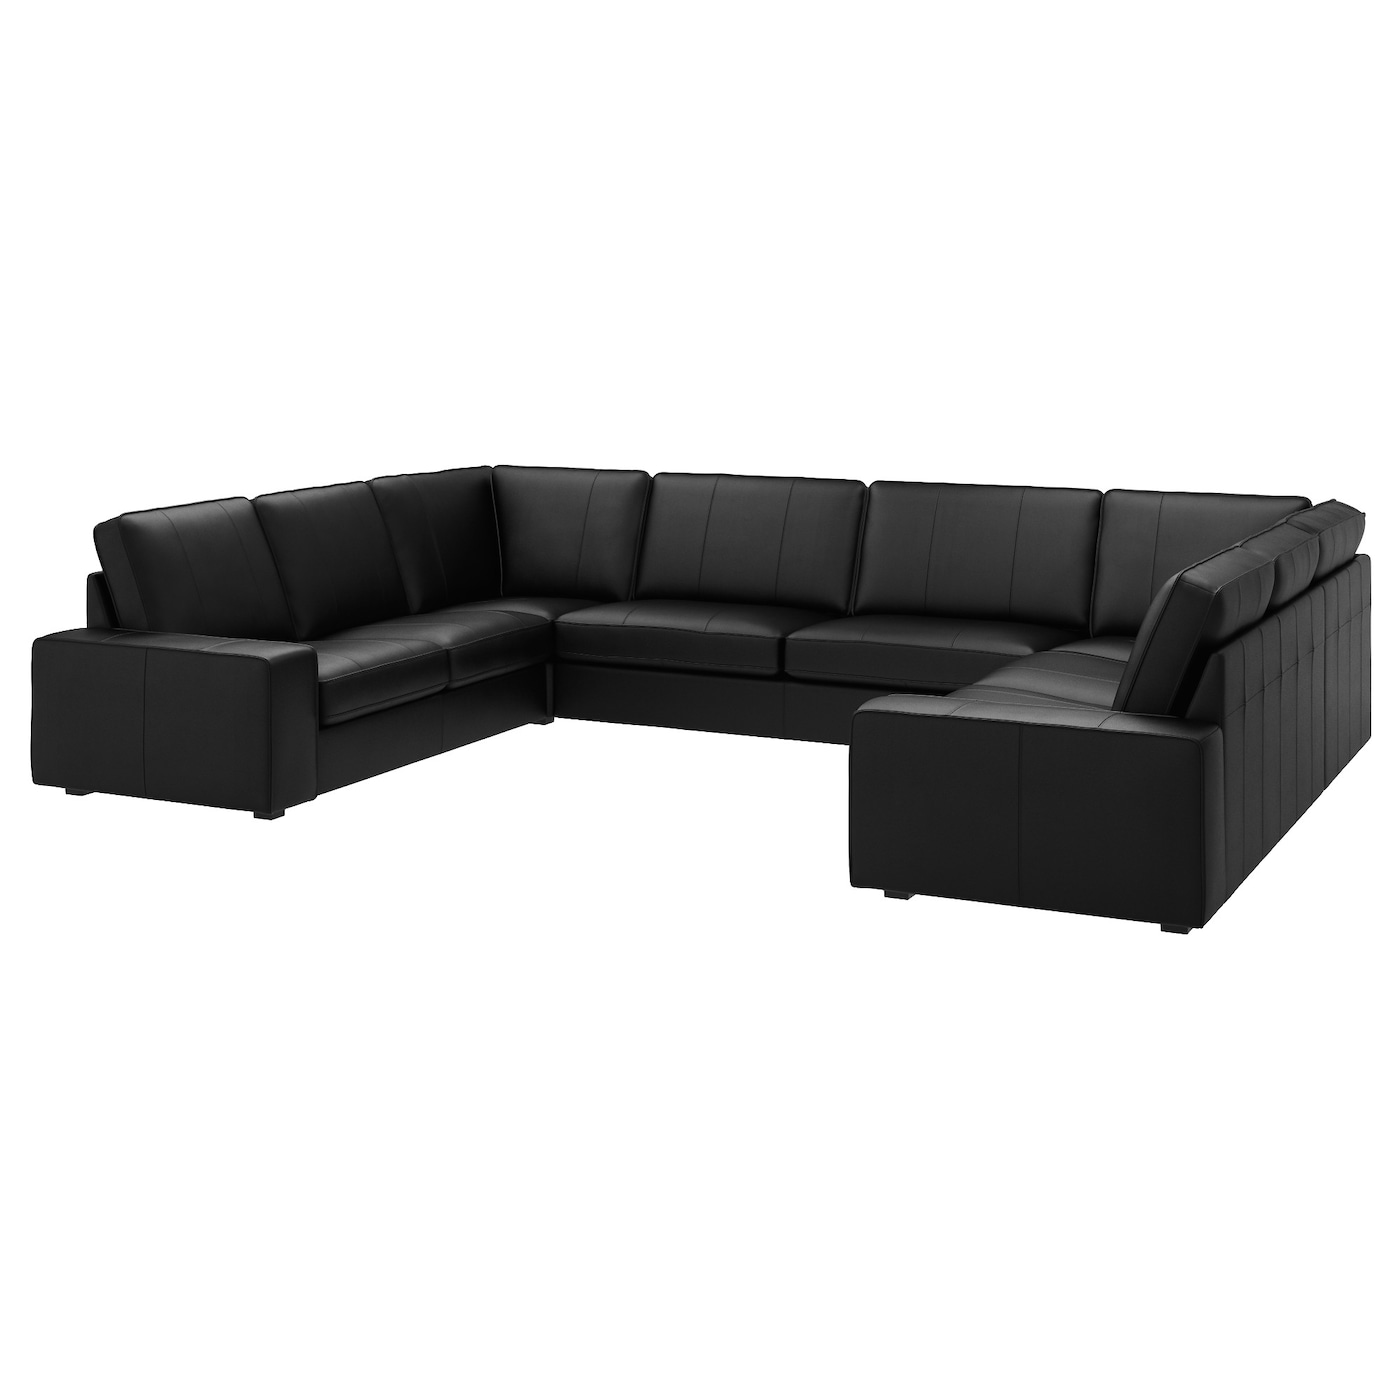 IKEA KIVIK sofa, U-shaped 10 year guarantee. Read about the terms in the guarantee brochure.